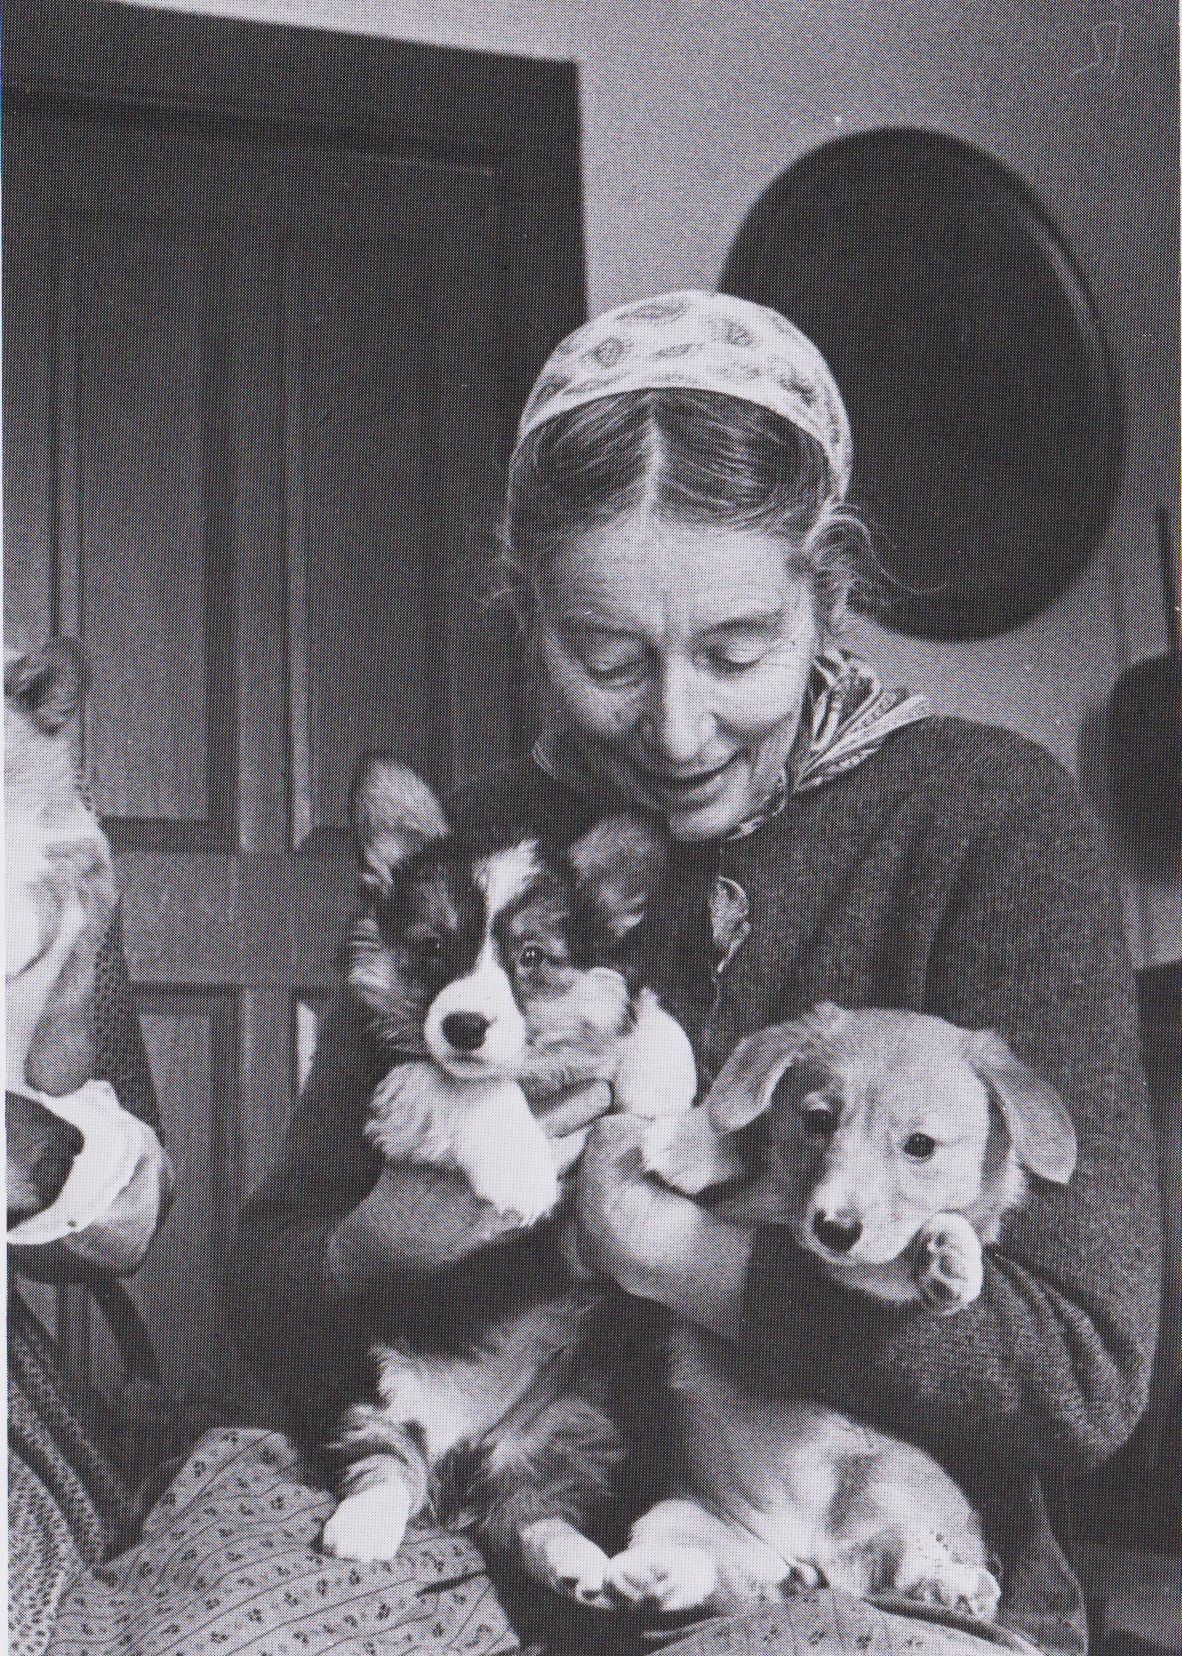 tasha-tudor-with-corgi-puppies